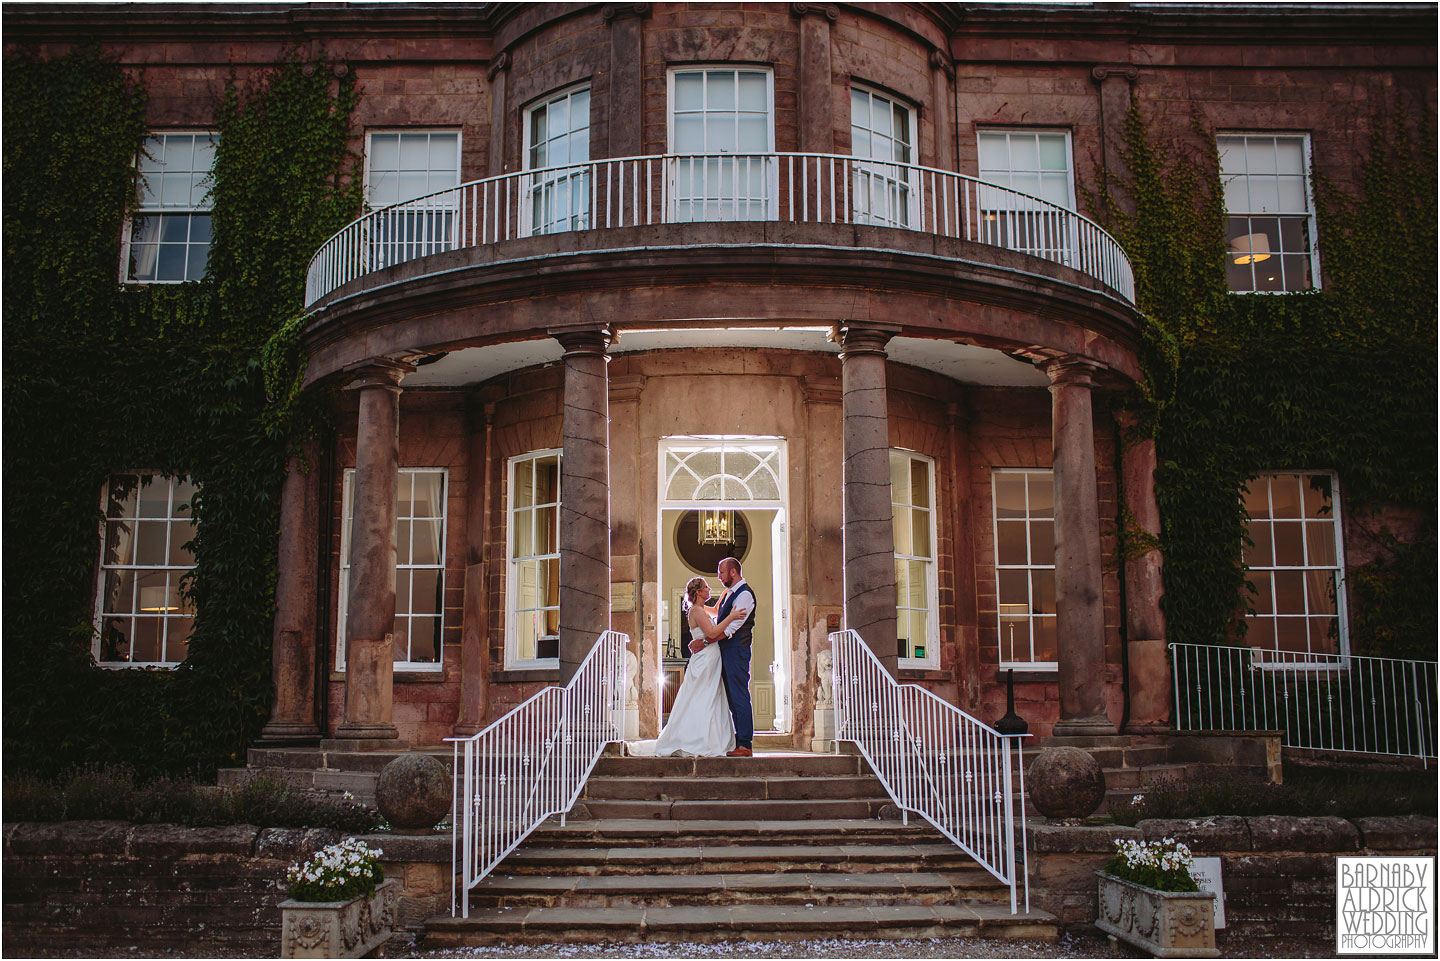 An evening flash portrait at Wood Hall Hotel in Wetherby